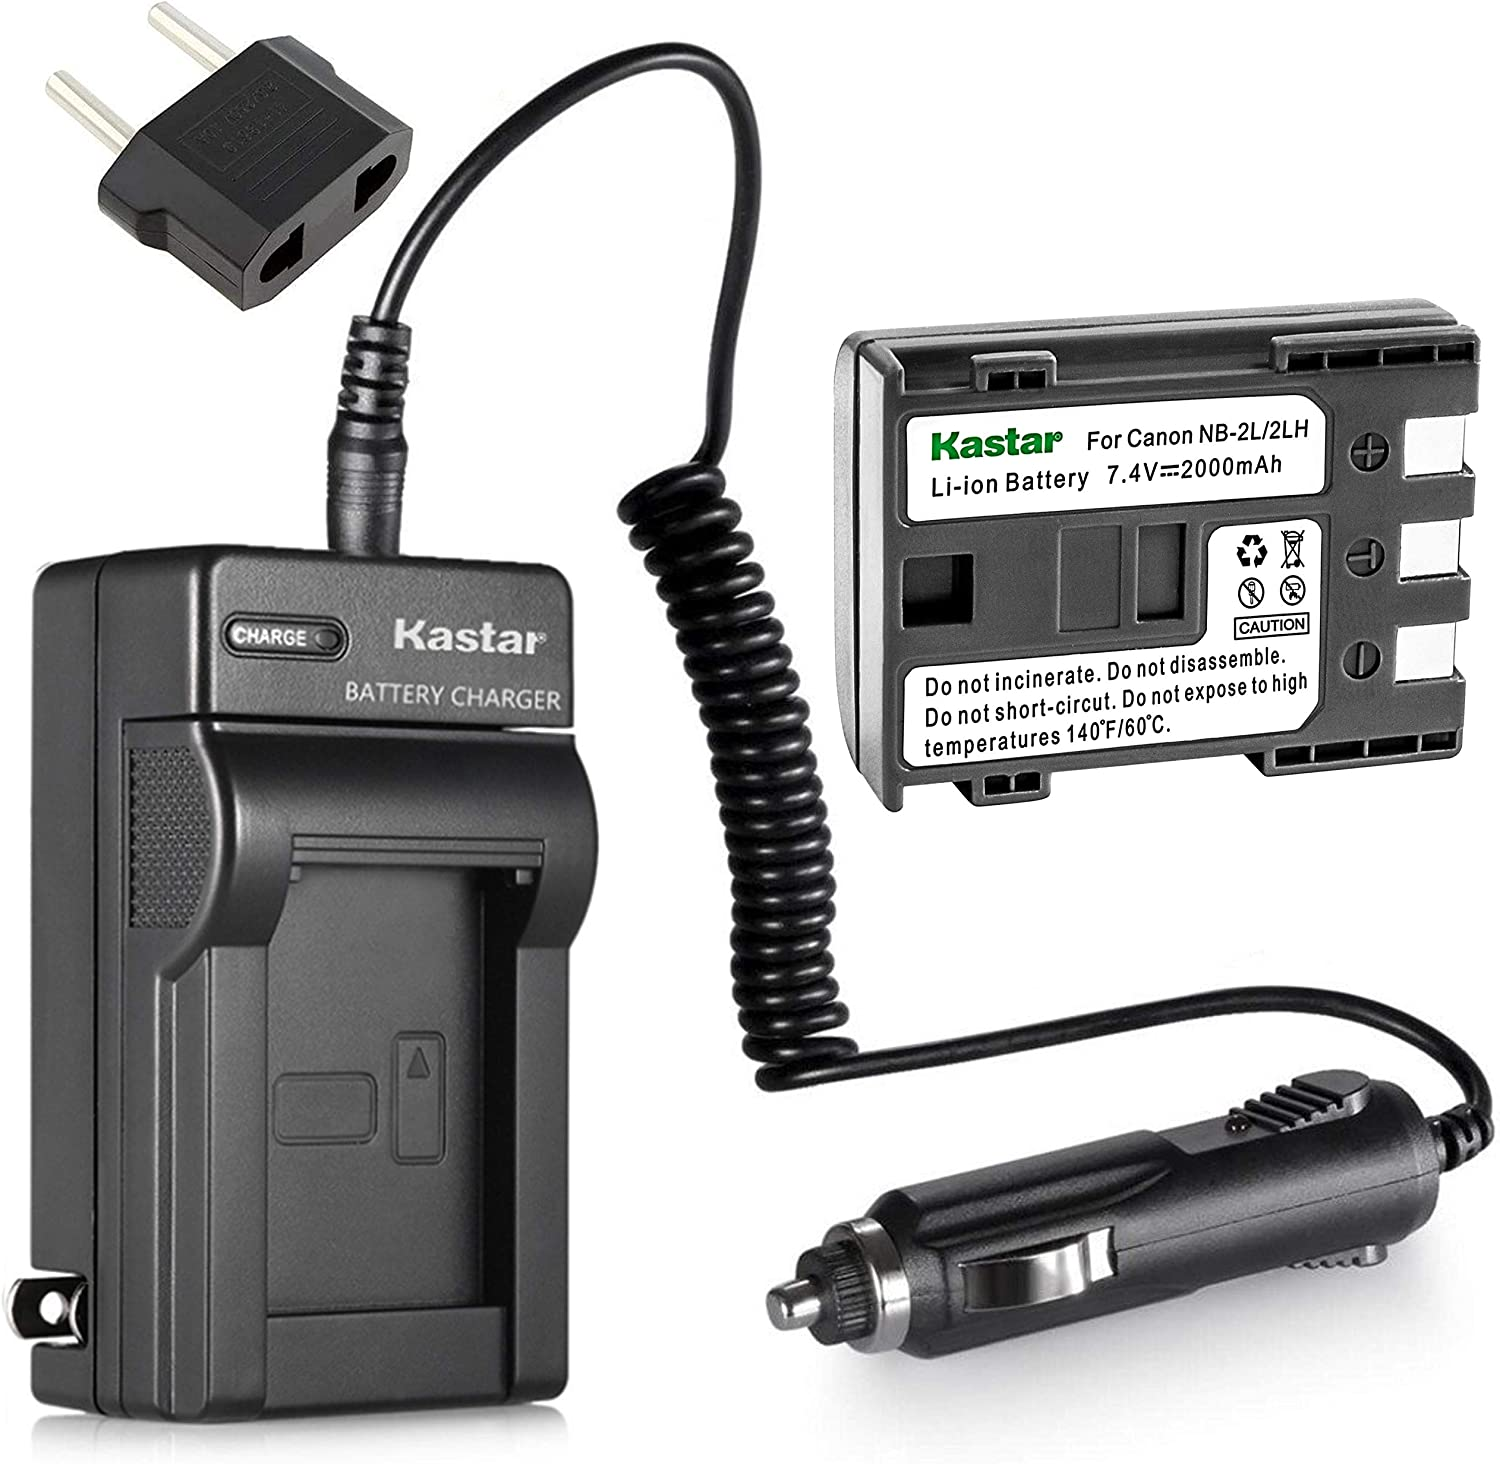 Halcyon 1700 mAH Lithium Ion Replacement Battery and Charger Kit for Canon VIXIA HF R100 2.39 MP Digital Camcorder and Canon NB-2LH